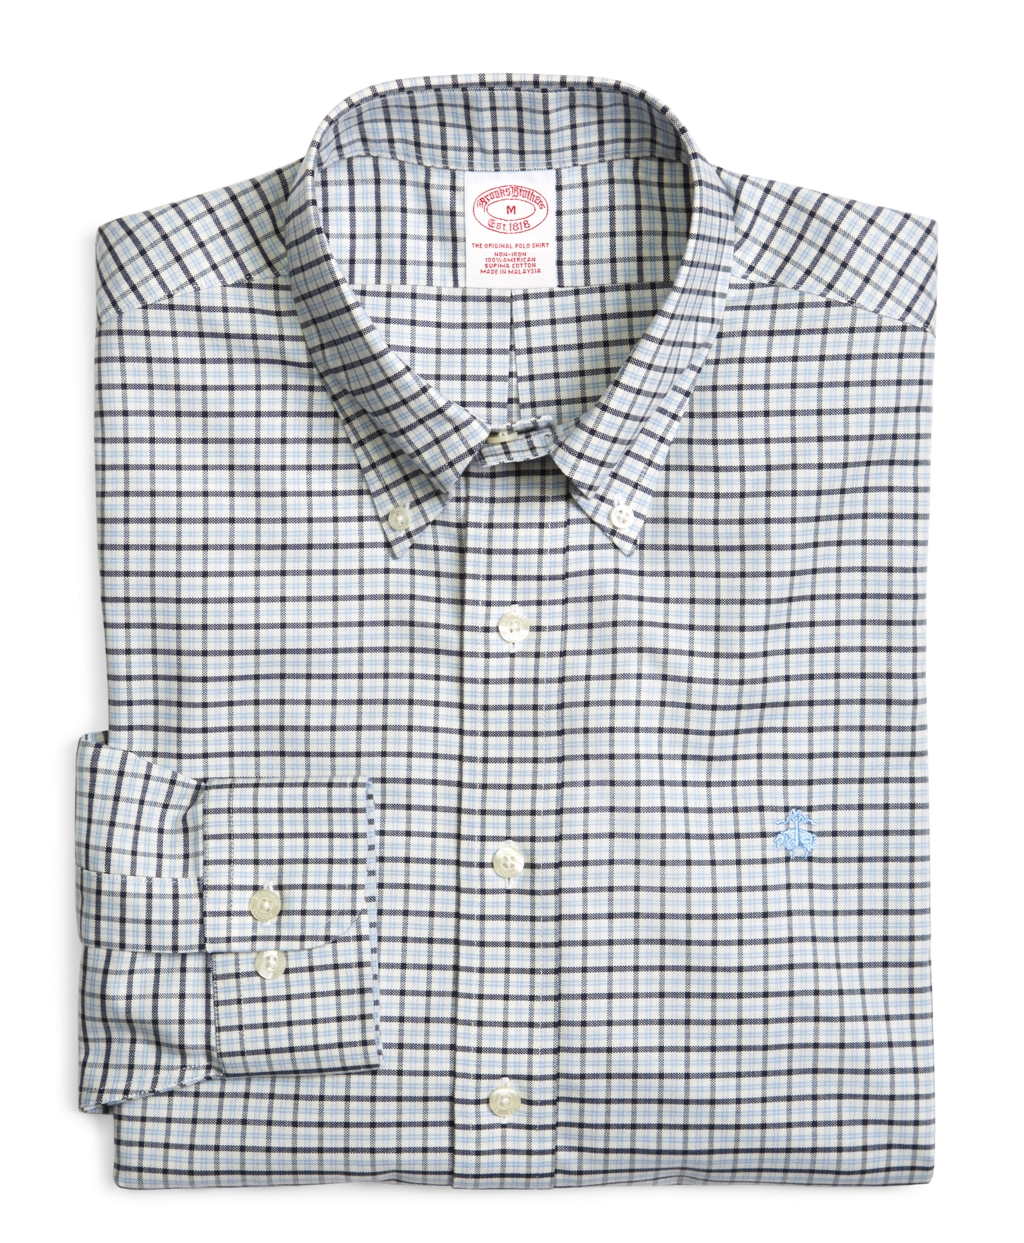 Brooks brothers supima cotton noniron regular fit Brooks brothers shirt size guide